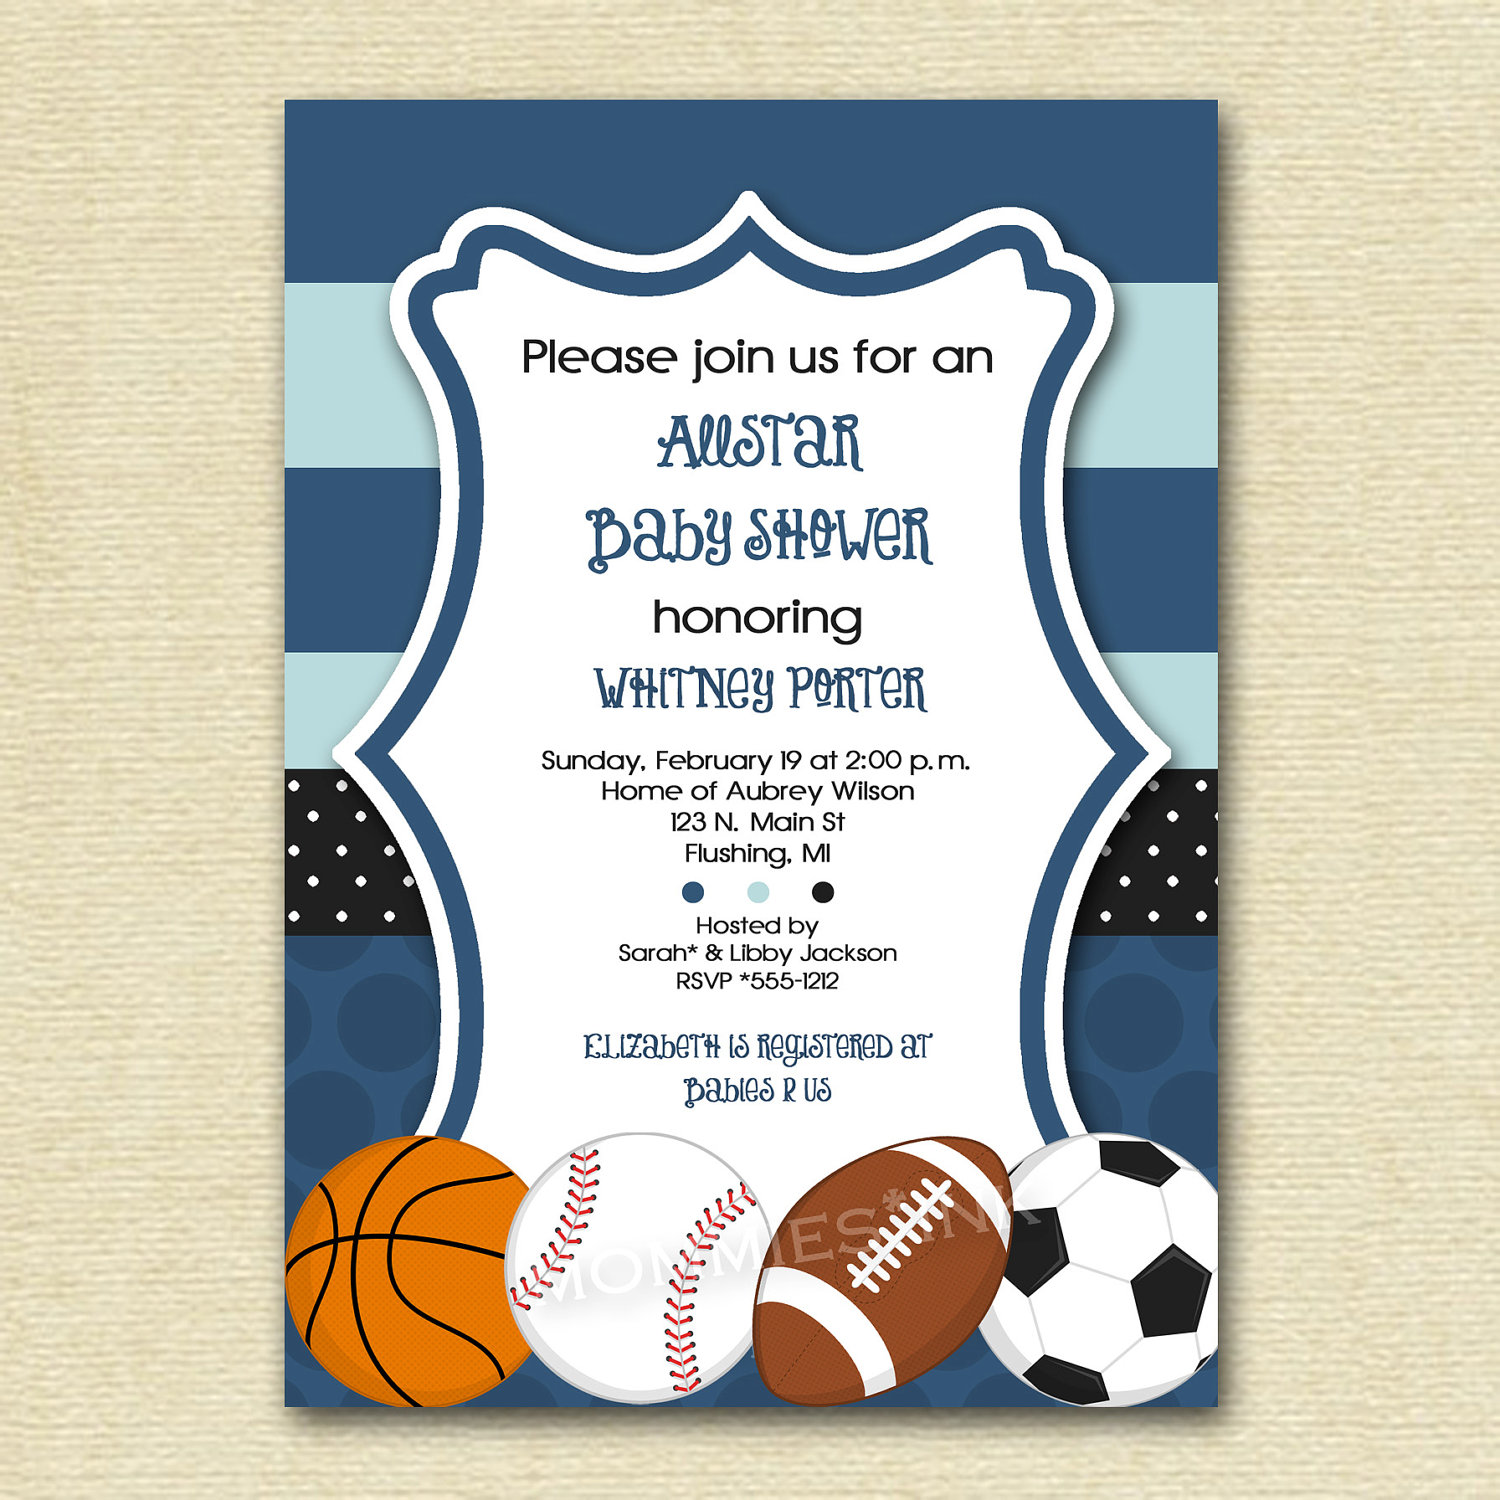 sports birthday party invitation template ; sports-baby-shower-invitations-as-terrific-Baby-Shower-invitation-template-designs-for-you-11120164